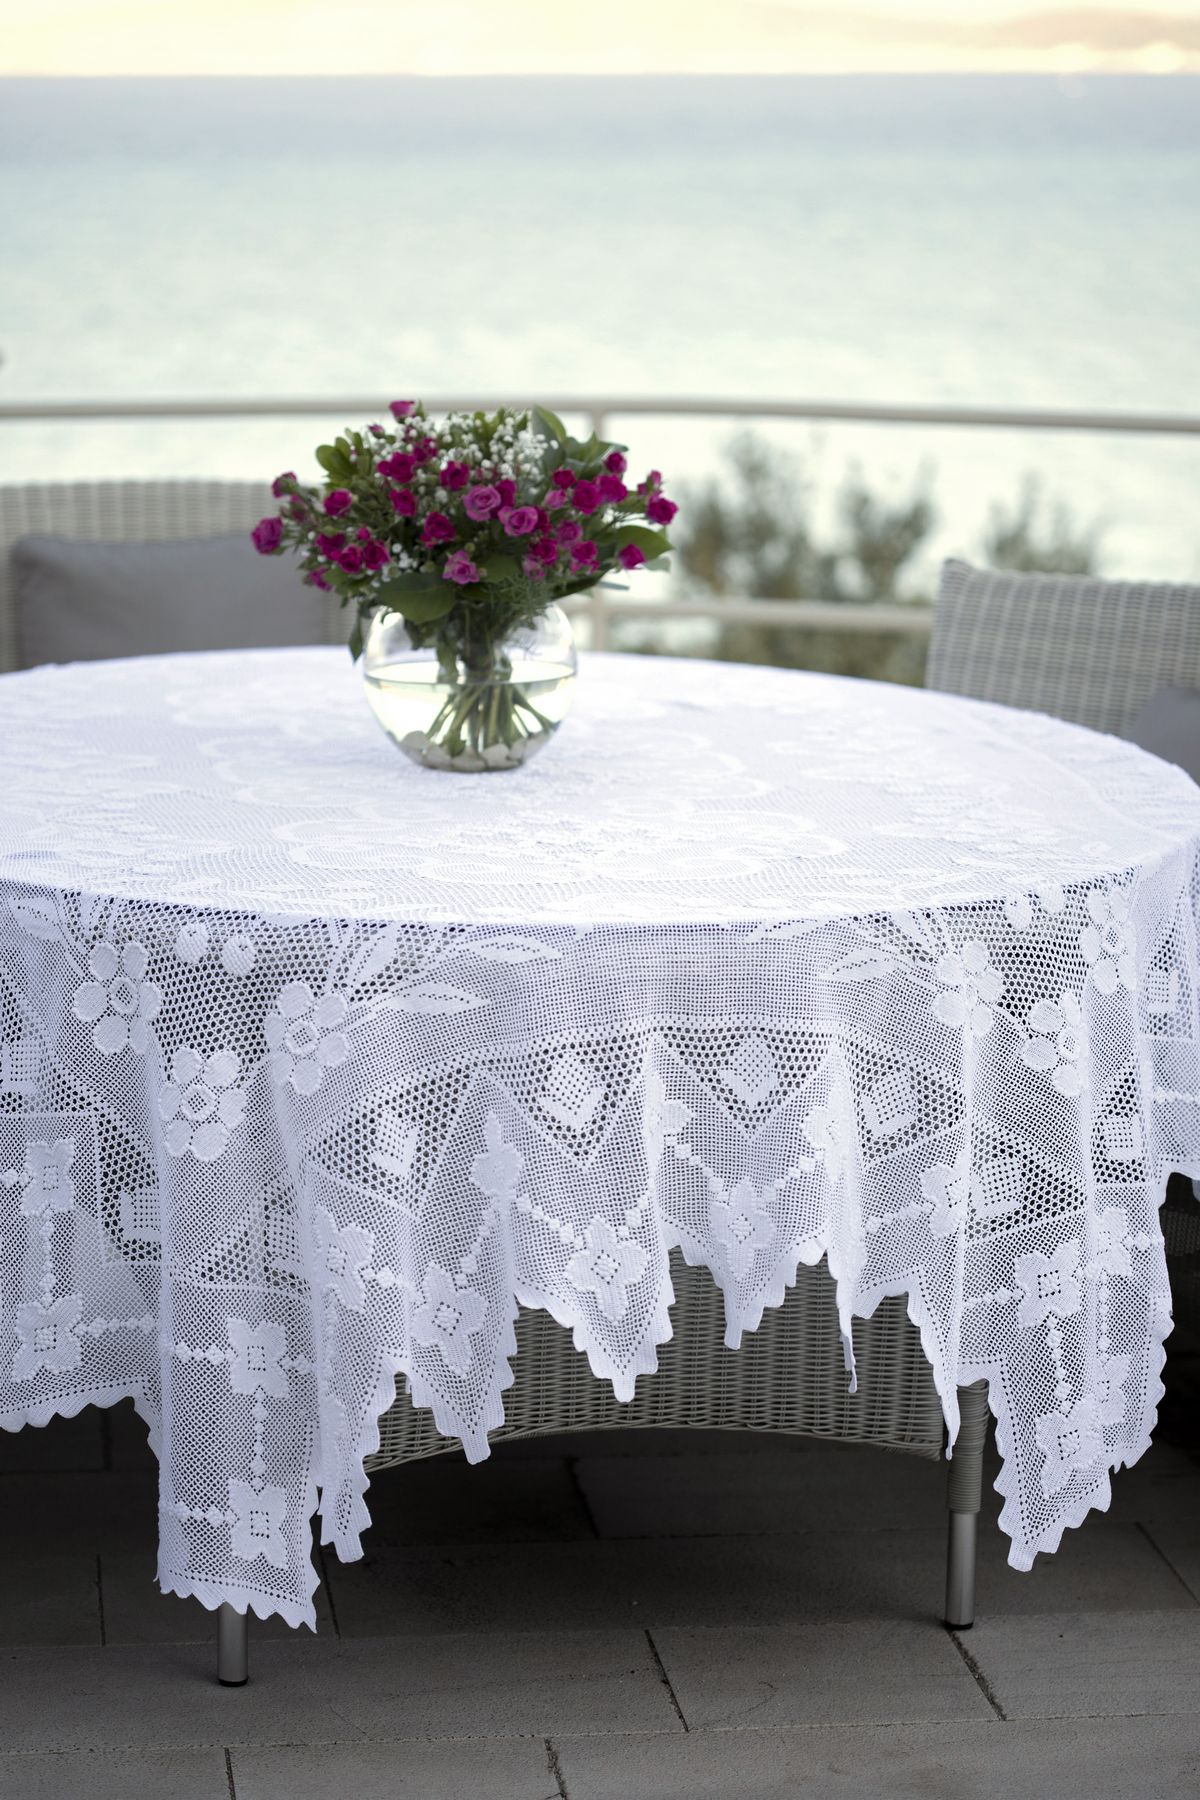 brfnvqhmf table on the g complete guide to tablecloths buying ebay cloths gds